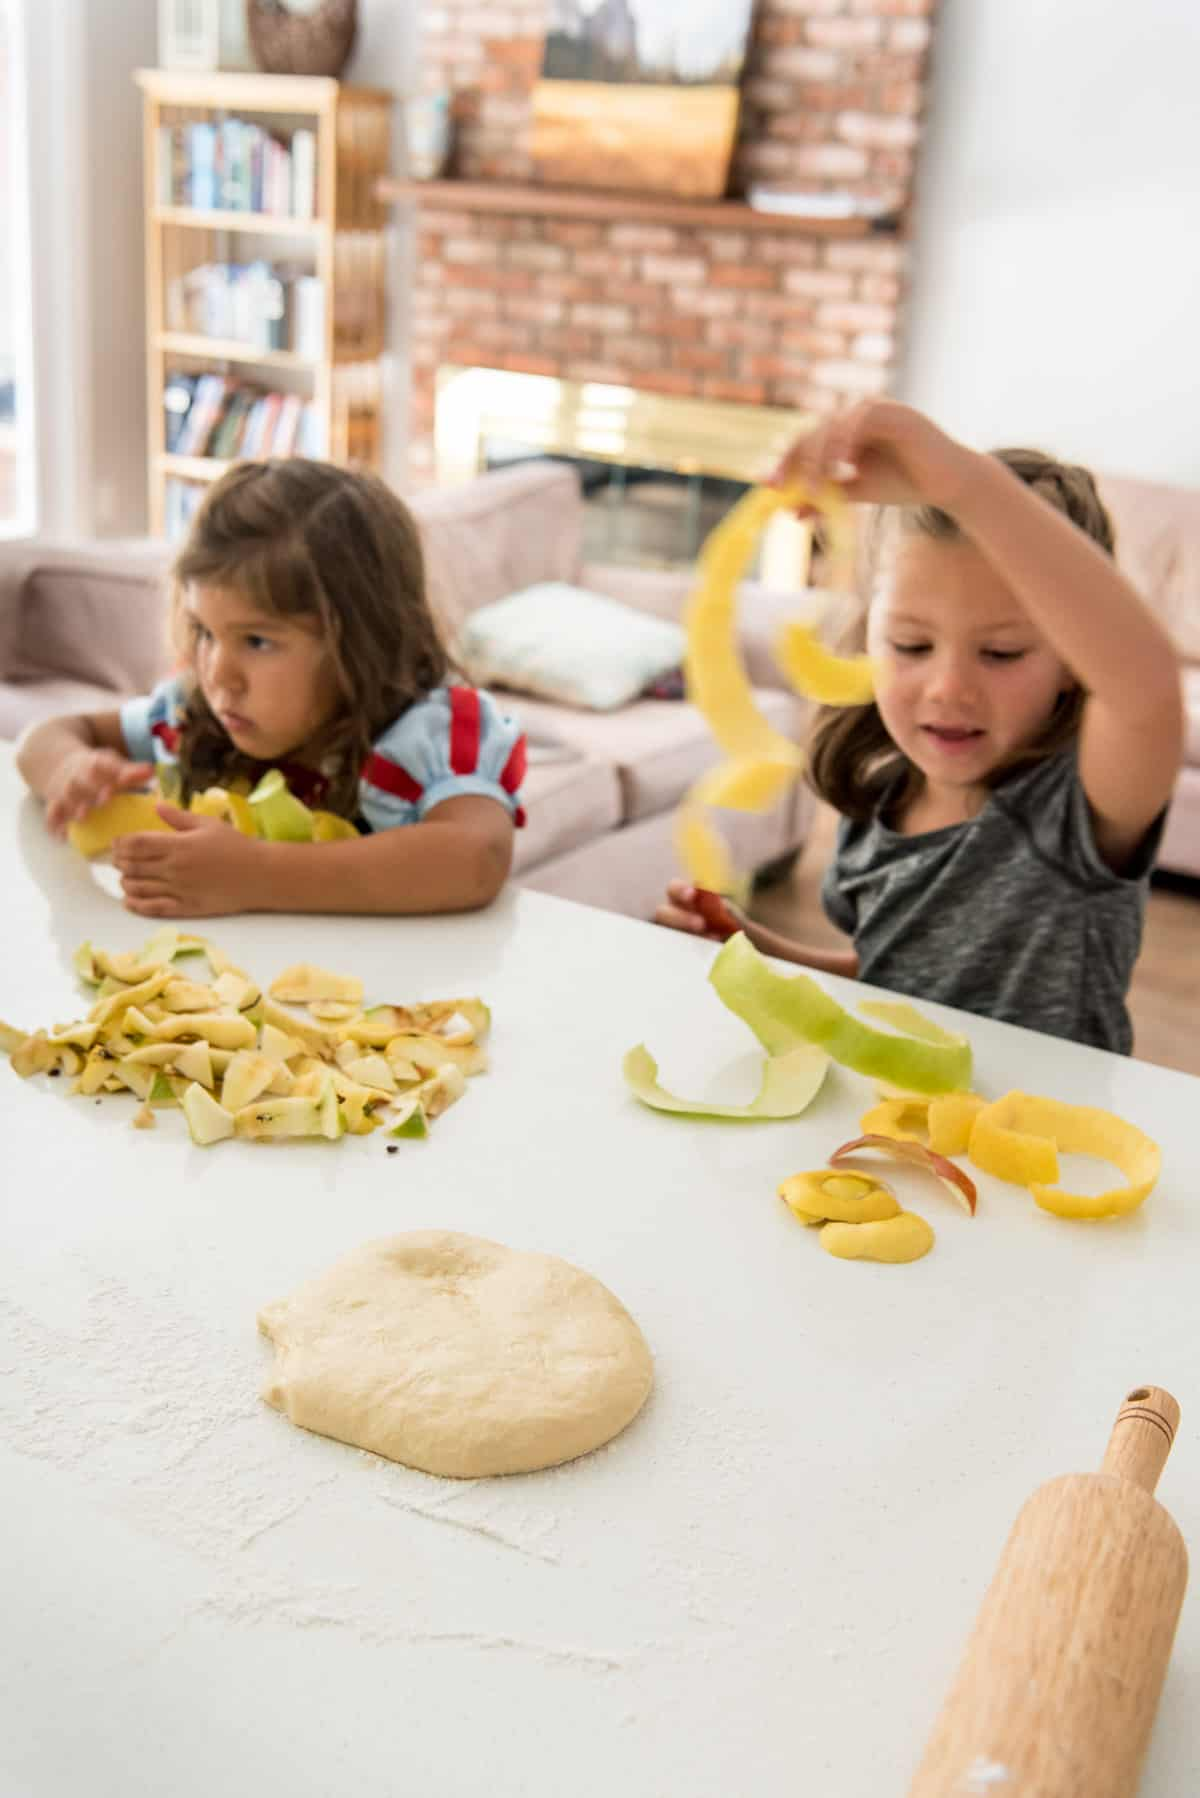 two young children at a counter with apple peels in front of homemade strudel dough and a rolling pin.